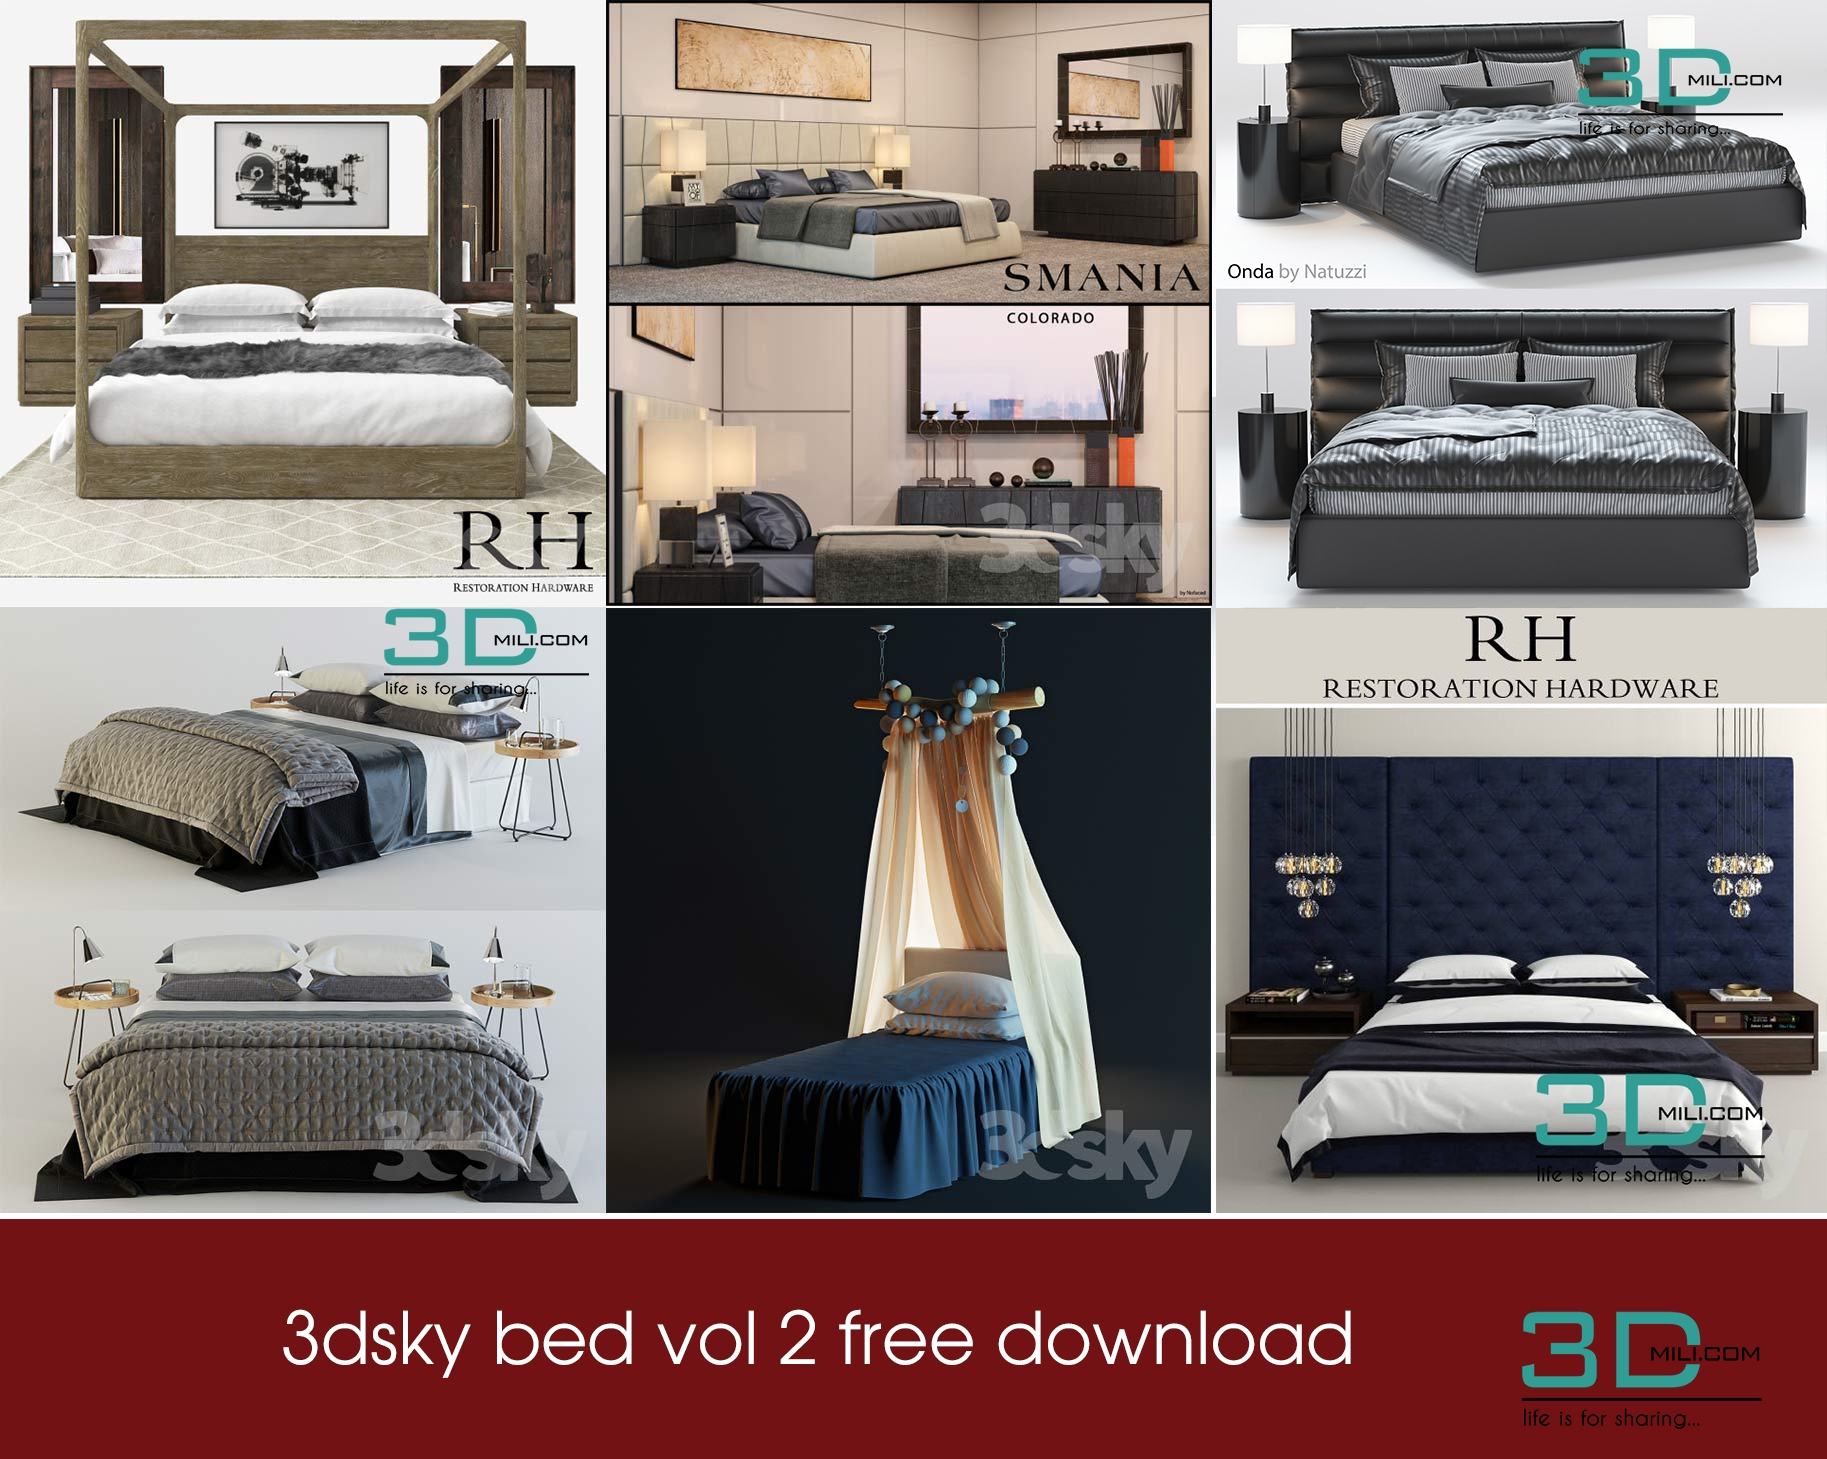 3dsky bed vol 2 free download - 3D Mili - Download 3D ...